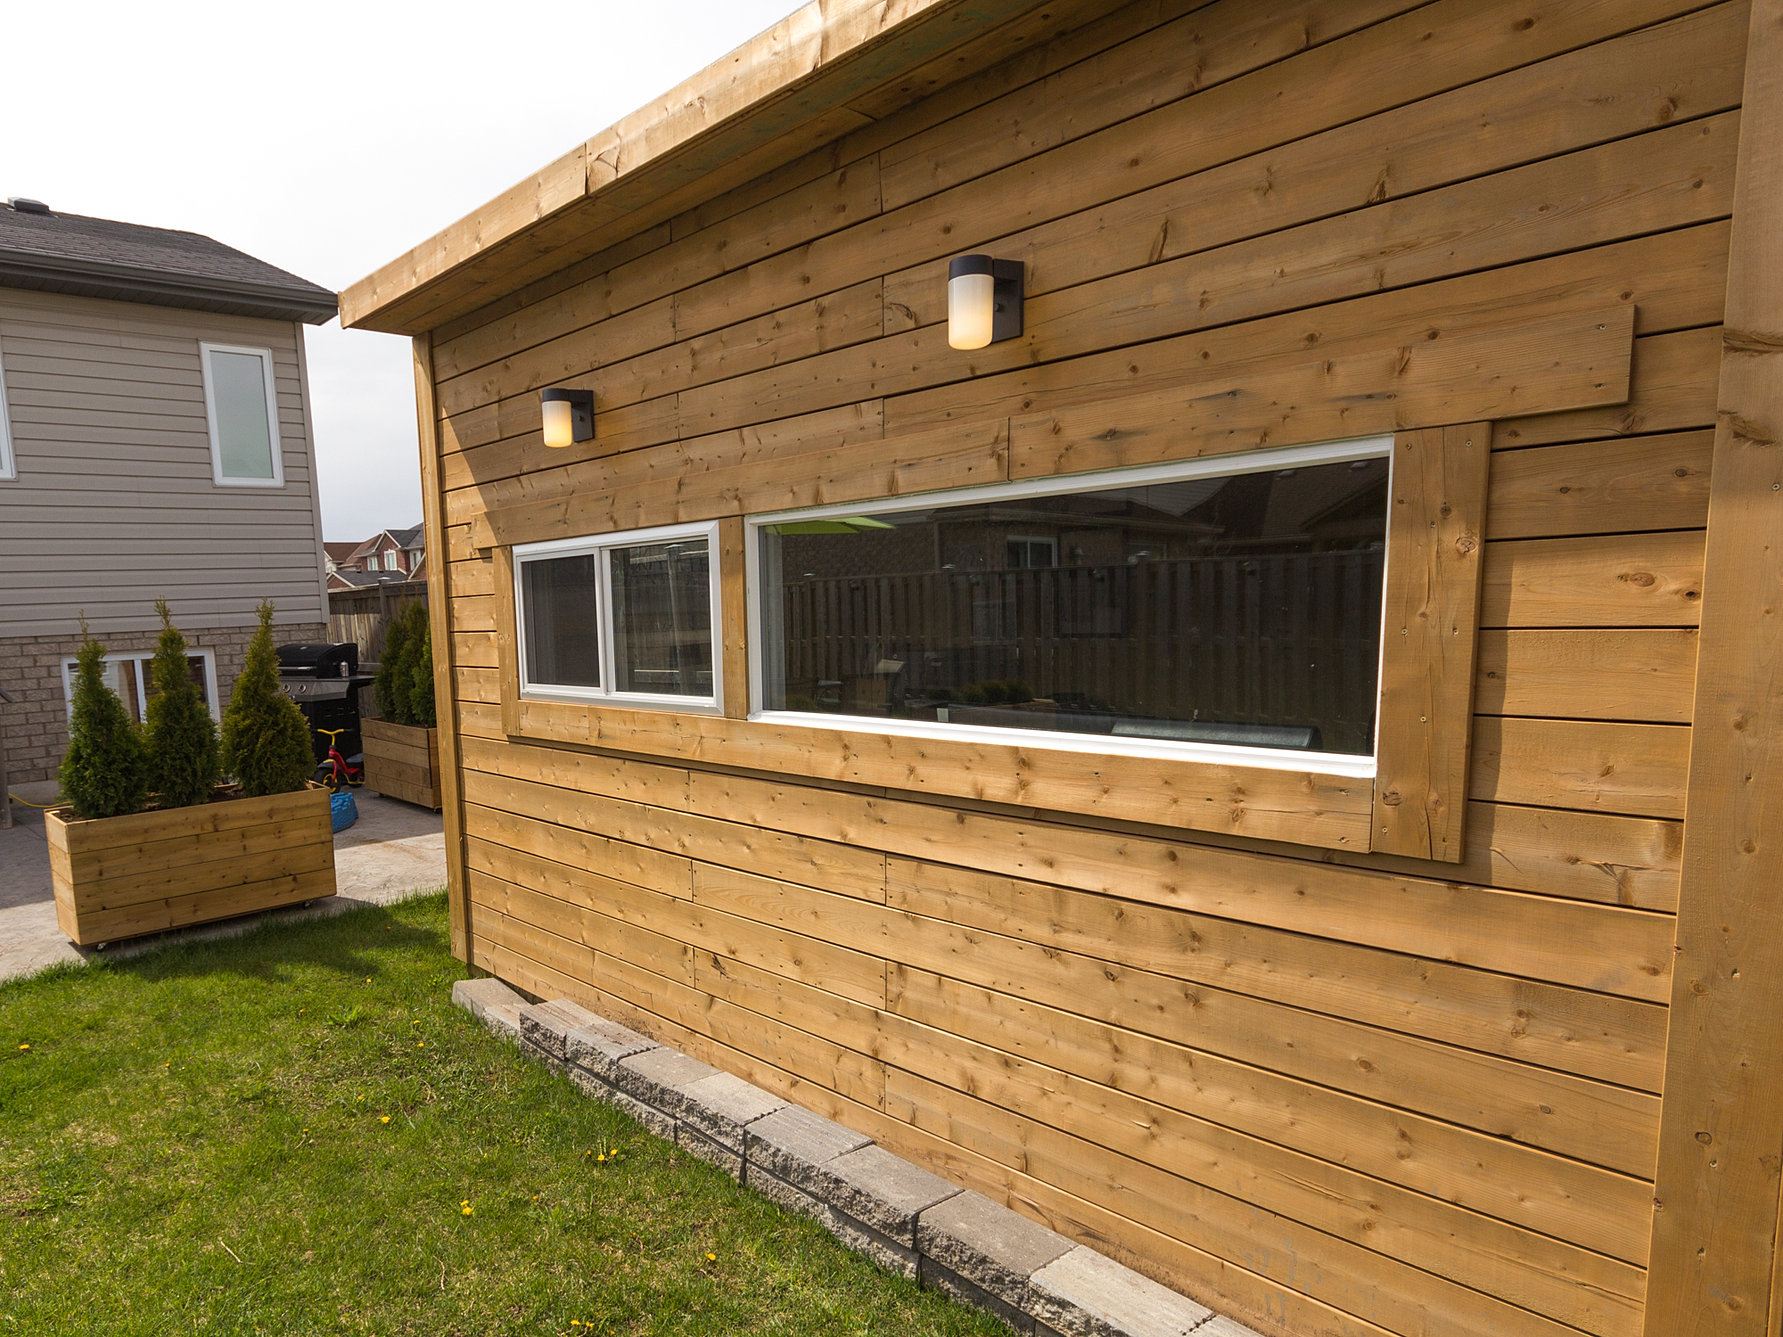 ^ Backyard scape Studios - Modern Sheds, Backyard Offices and Bunkies